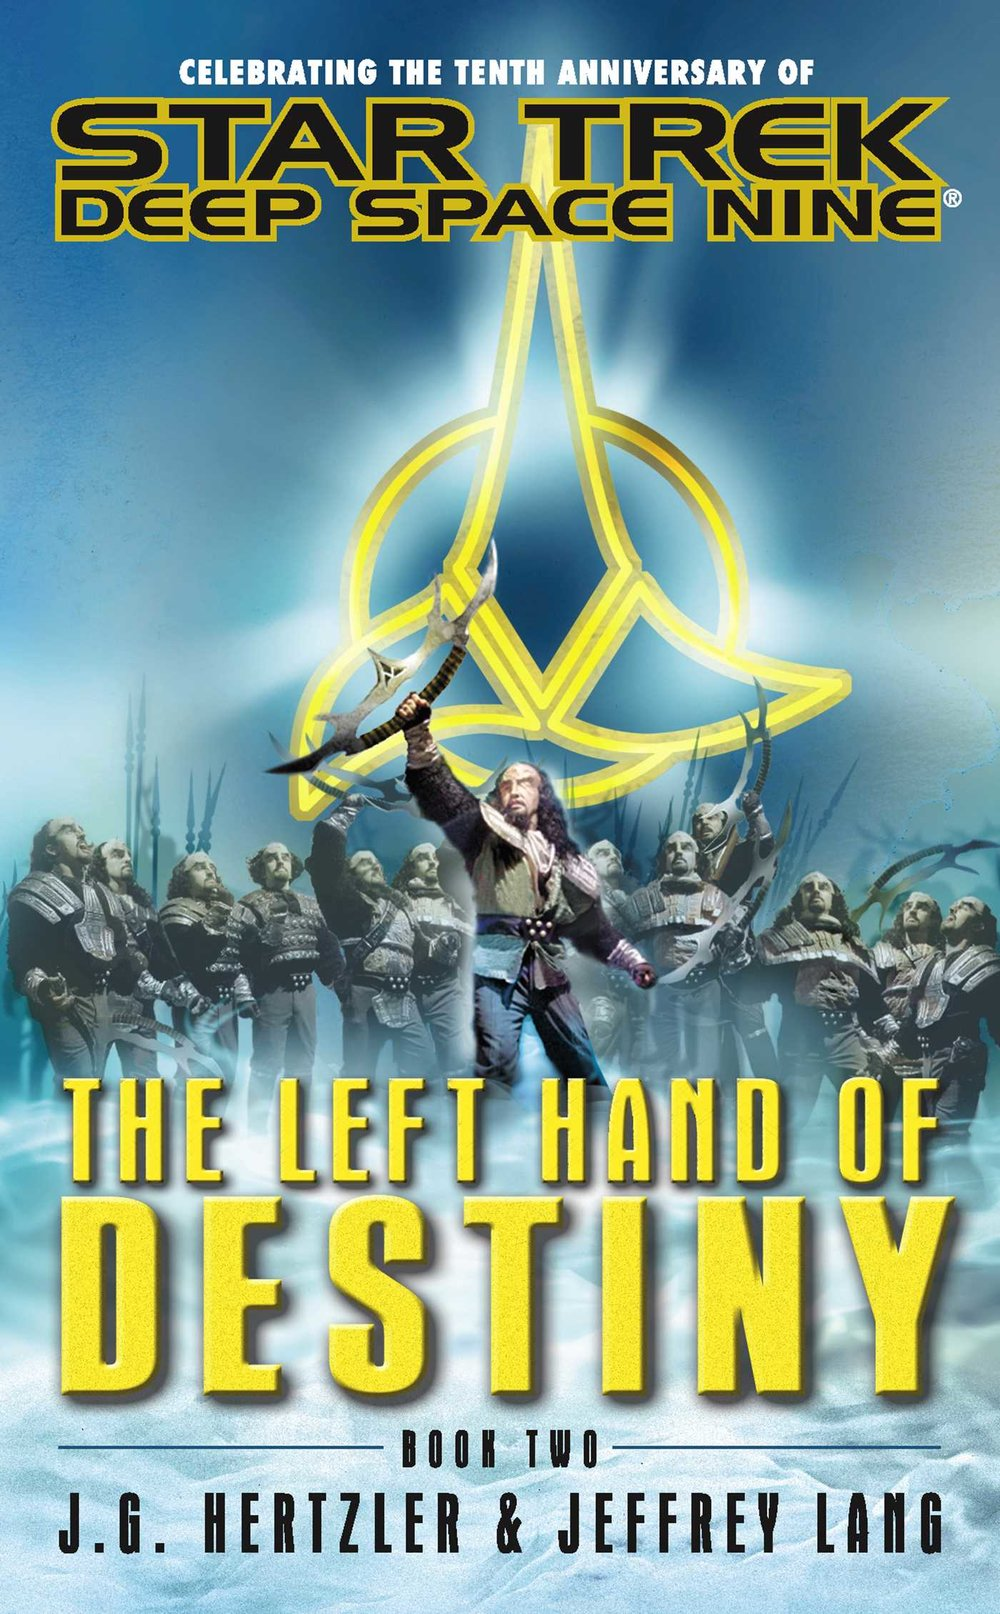 star-trek-deep-space-nine-the-left-hand-of-destiny-book-two-9780743423298_hr.jpg